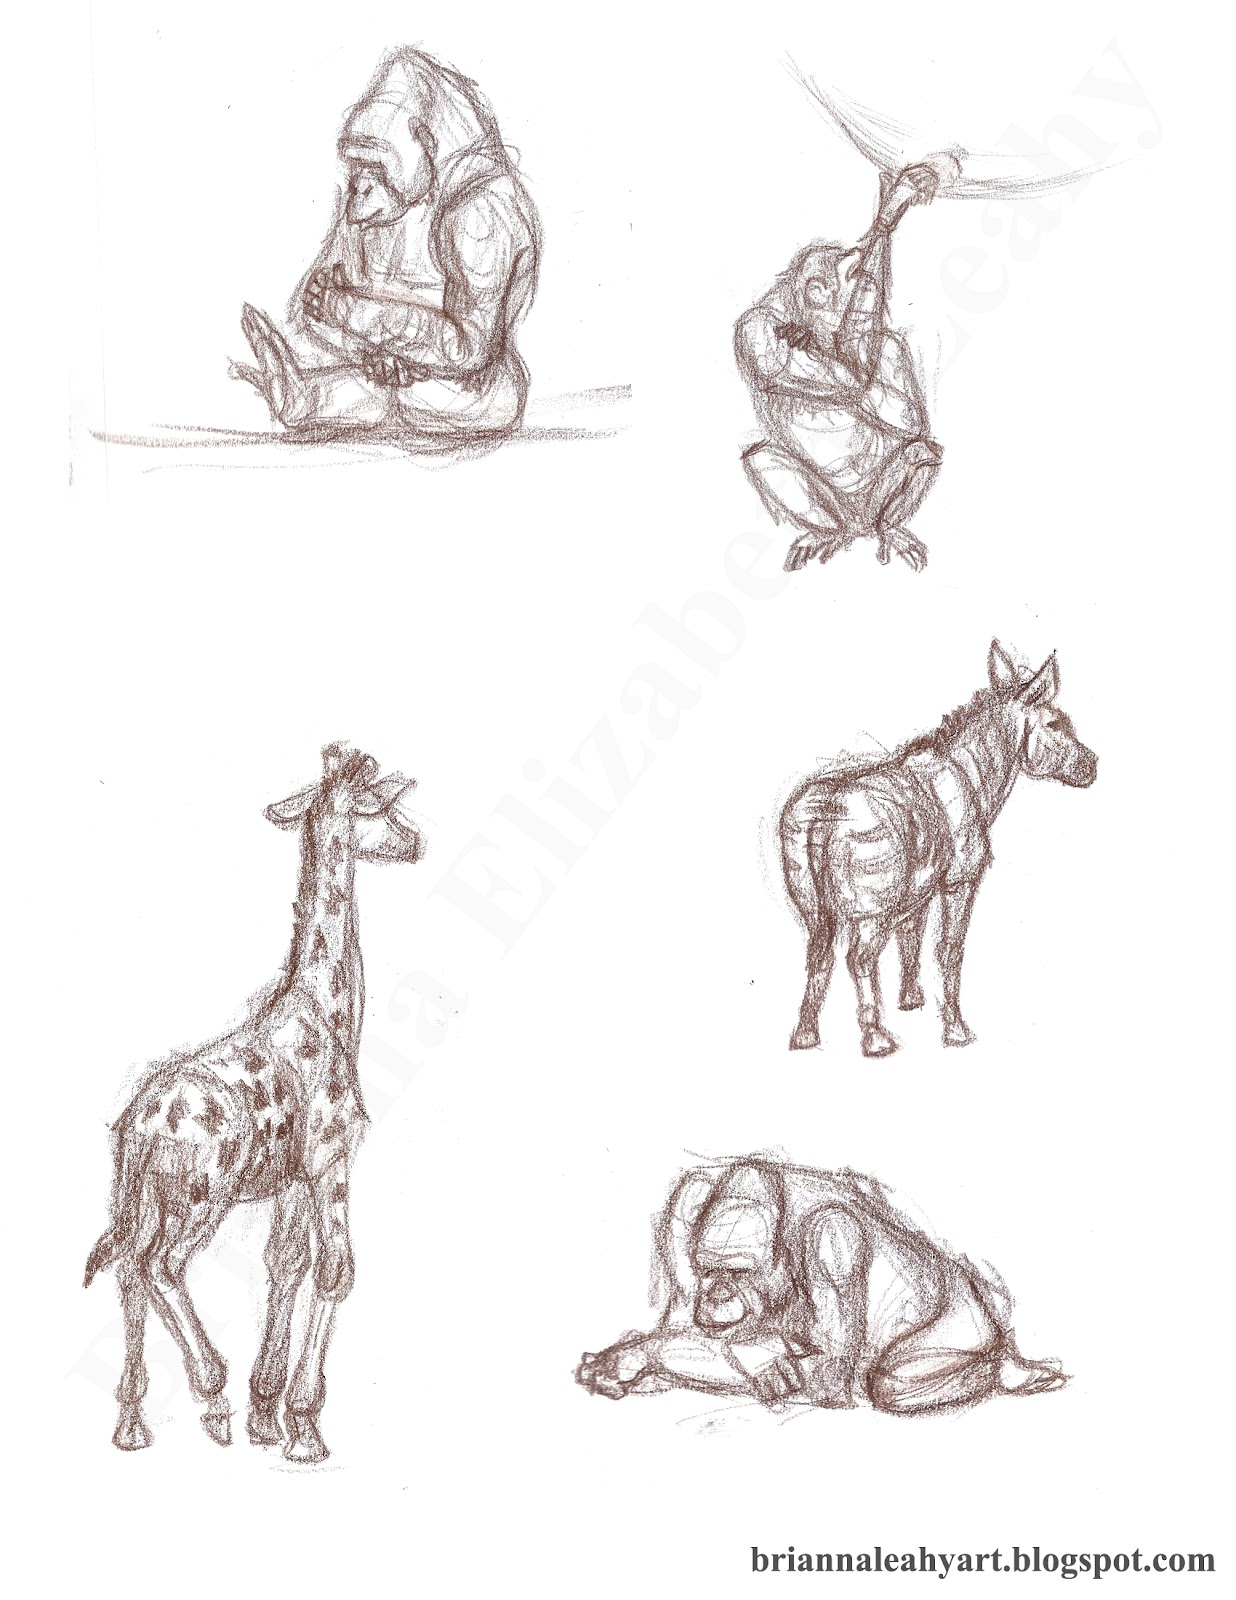 Line Drawings Of Zoo Animals : Art by bri e leahy live animal drawing los angeles zoo